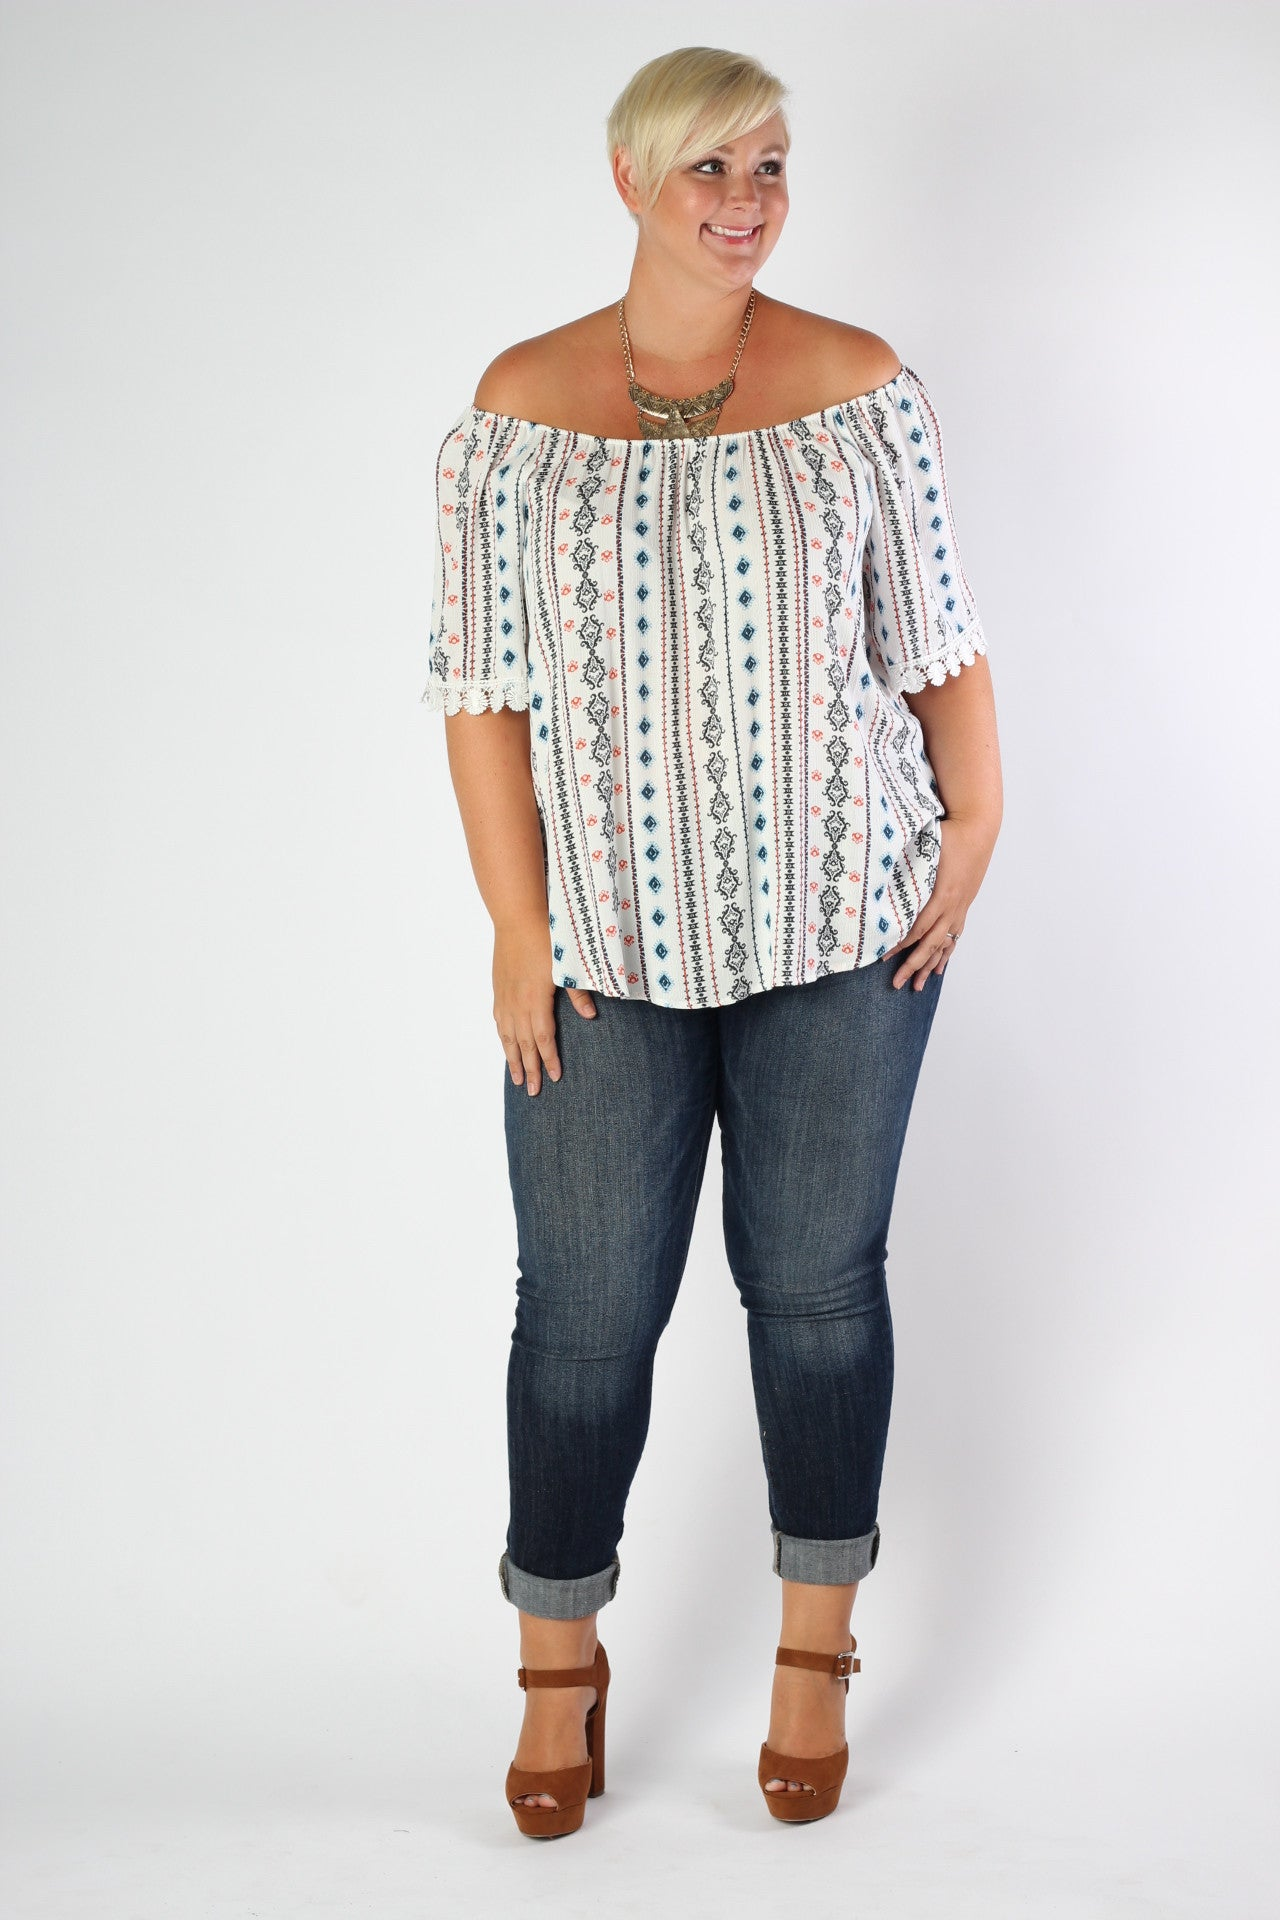 Show off those sunkissed shoulders in this fun off-the-shoulder top! You'll be sure to turn heads in this piece whether you're at the beach or out shopping with the gals. 100% Rayon Hand wash cold Hang dry Dry Cleaning recommended Made in USA Length Arm hole Size:14/16 26